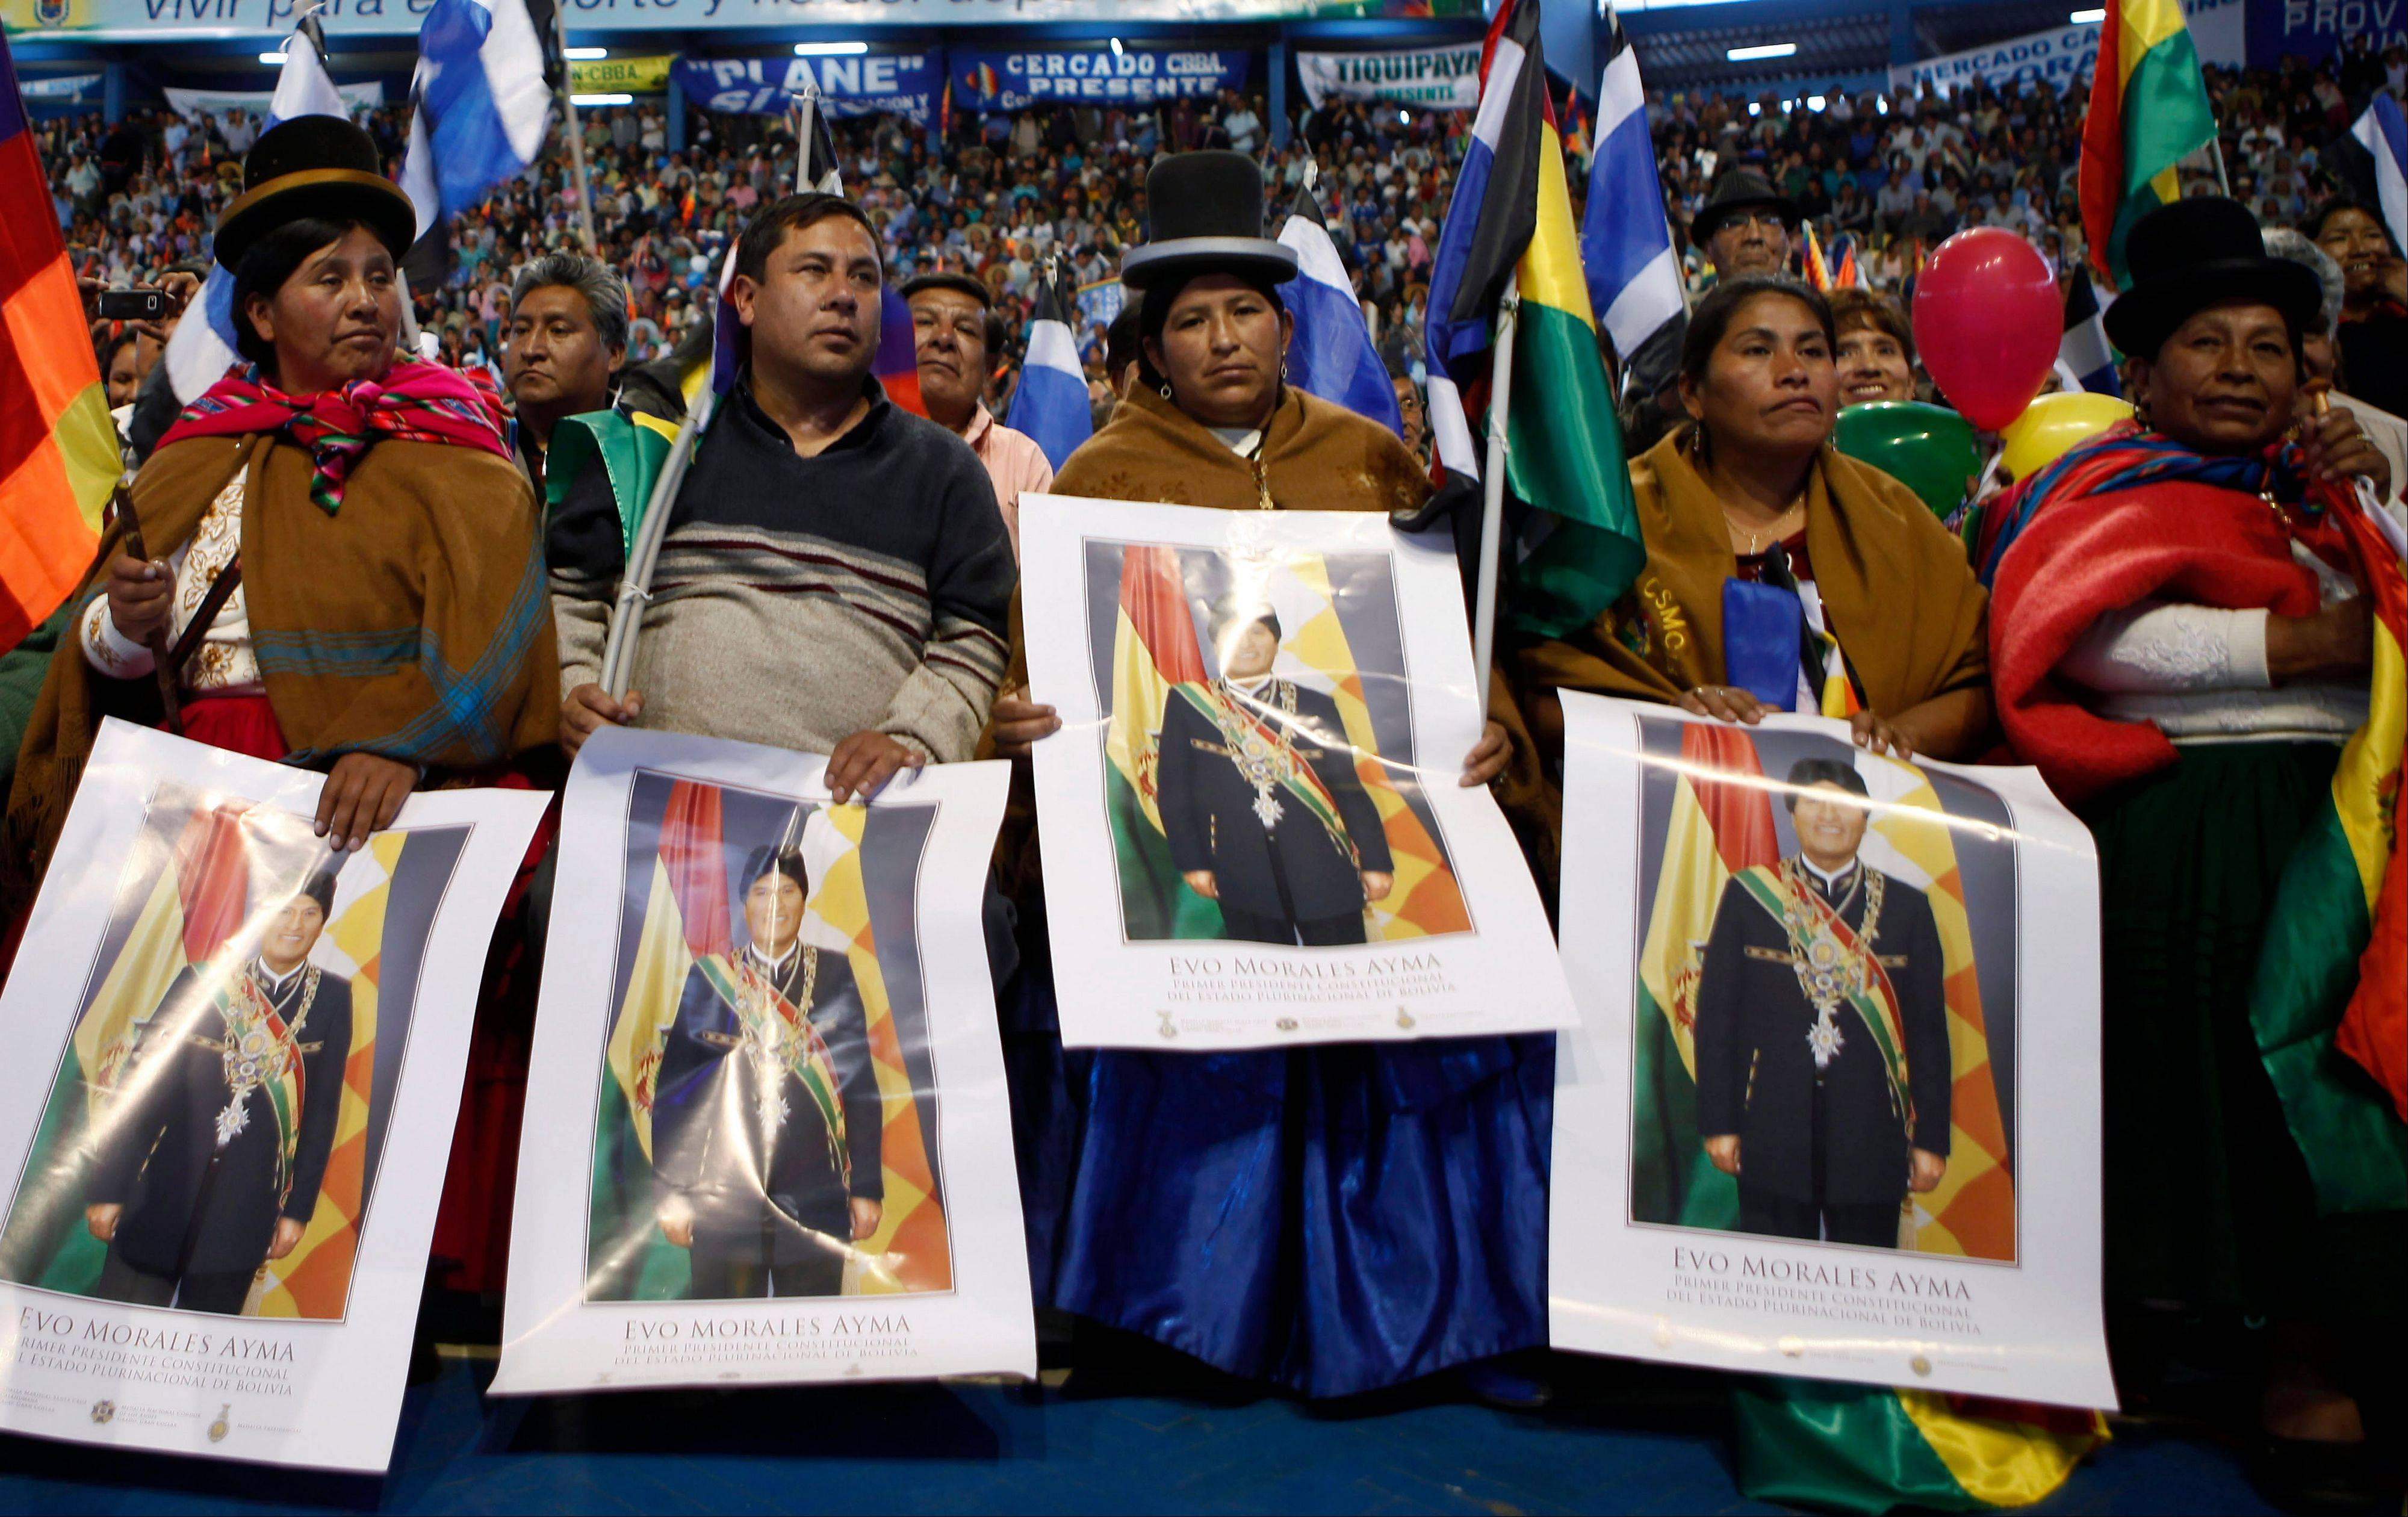 Aymara women hold a posters of Bolivia�s President Evo Morales during a welcome ceremony for presidents attending an extraordinary meeting in Cochabamba, Bolivia, Thursday, July 4, 2013. Leaders of Uruguay, Ecuador, Suriname, Argentina and Venezuela are meeting in Bolivia Thursday in support of Morales, who said Thursday that the rerouting of his plane in Europe, over suspicions that National Security Agency leaker Edward Snowden was on board was a plot by the U.S. to intimidate him and other Latin American leaders.